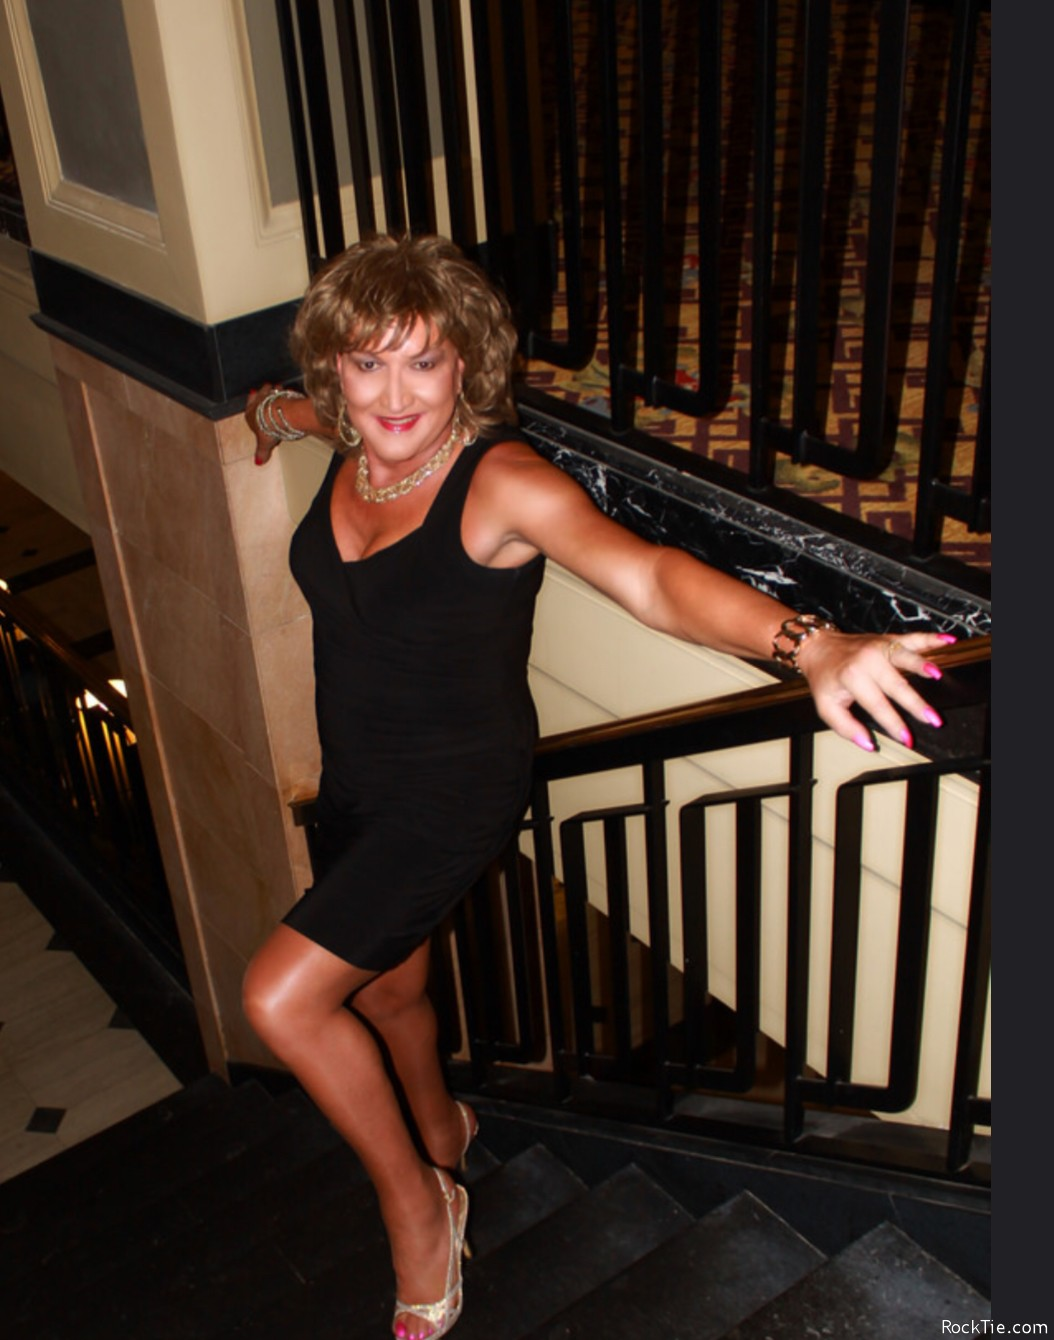 Looking for Lovers - Free Swingers Wife Swapping Swinger